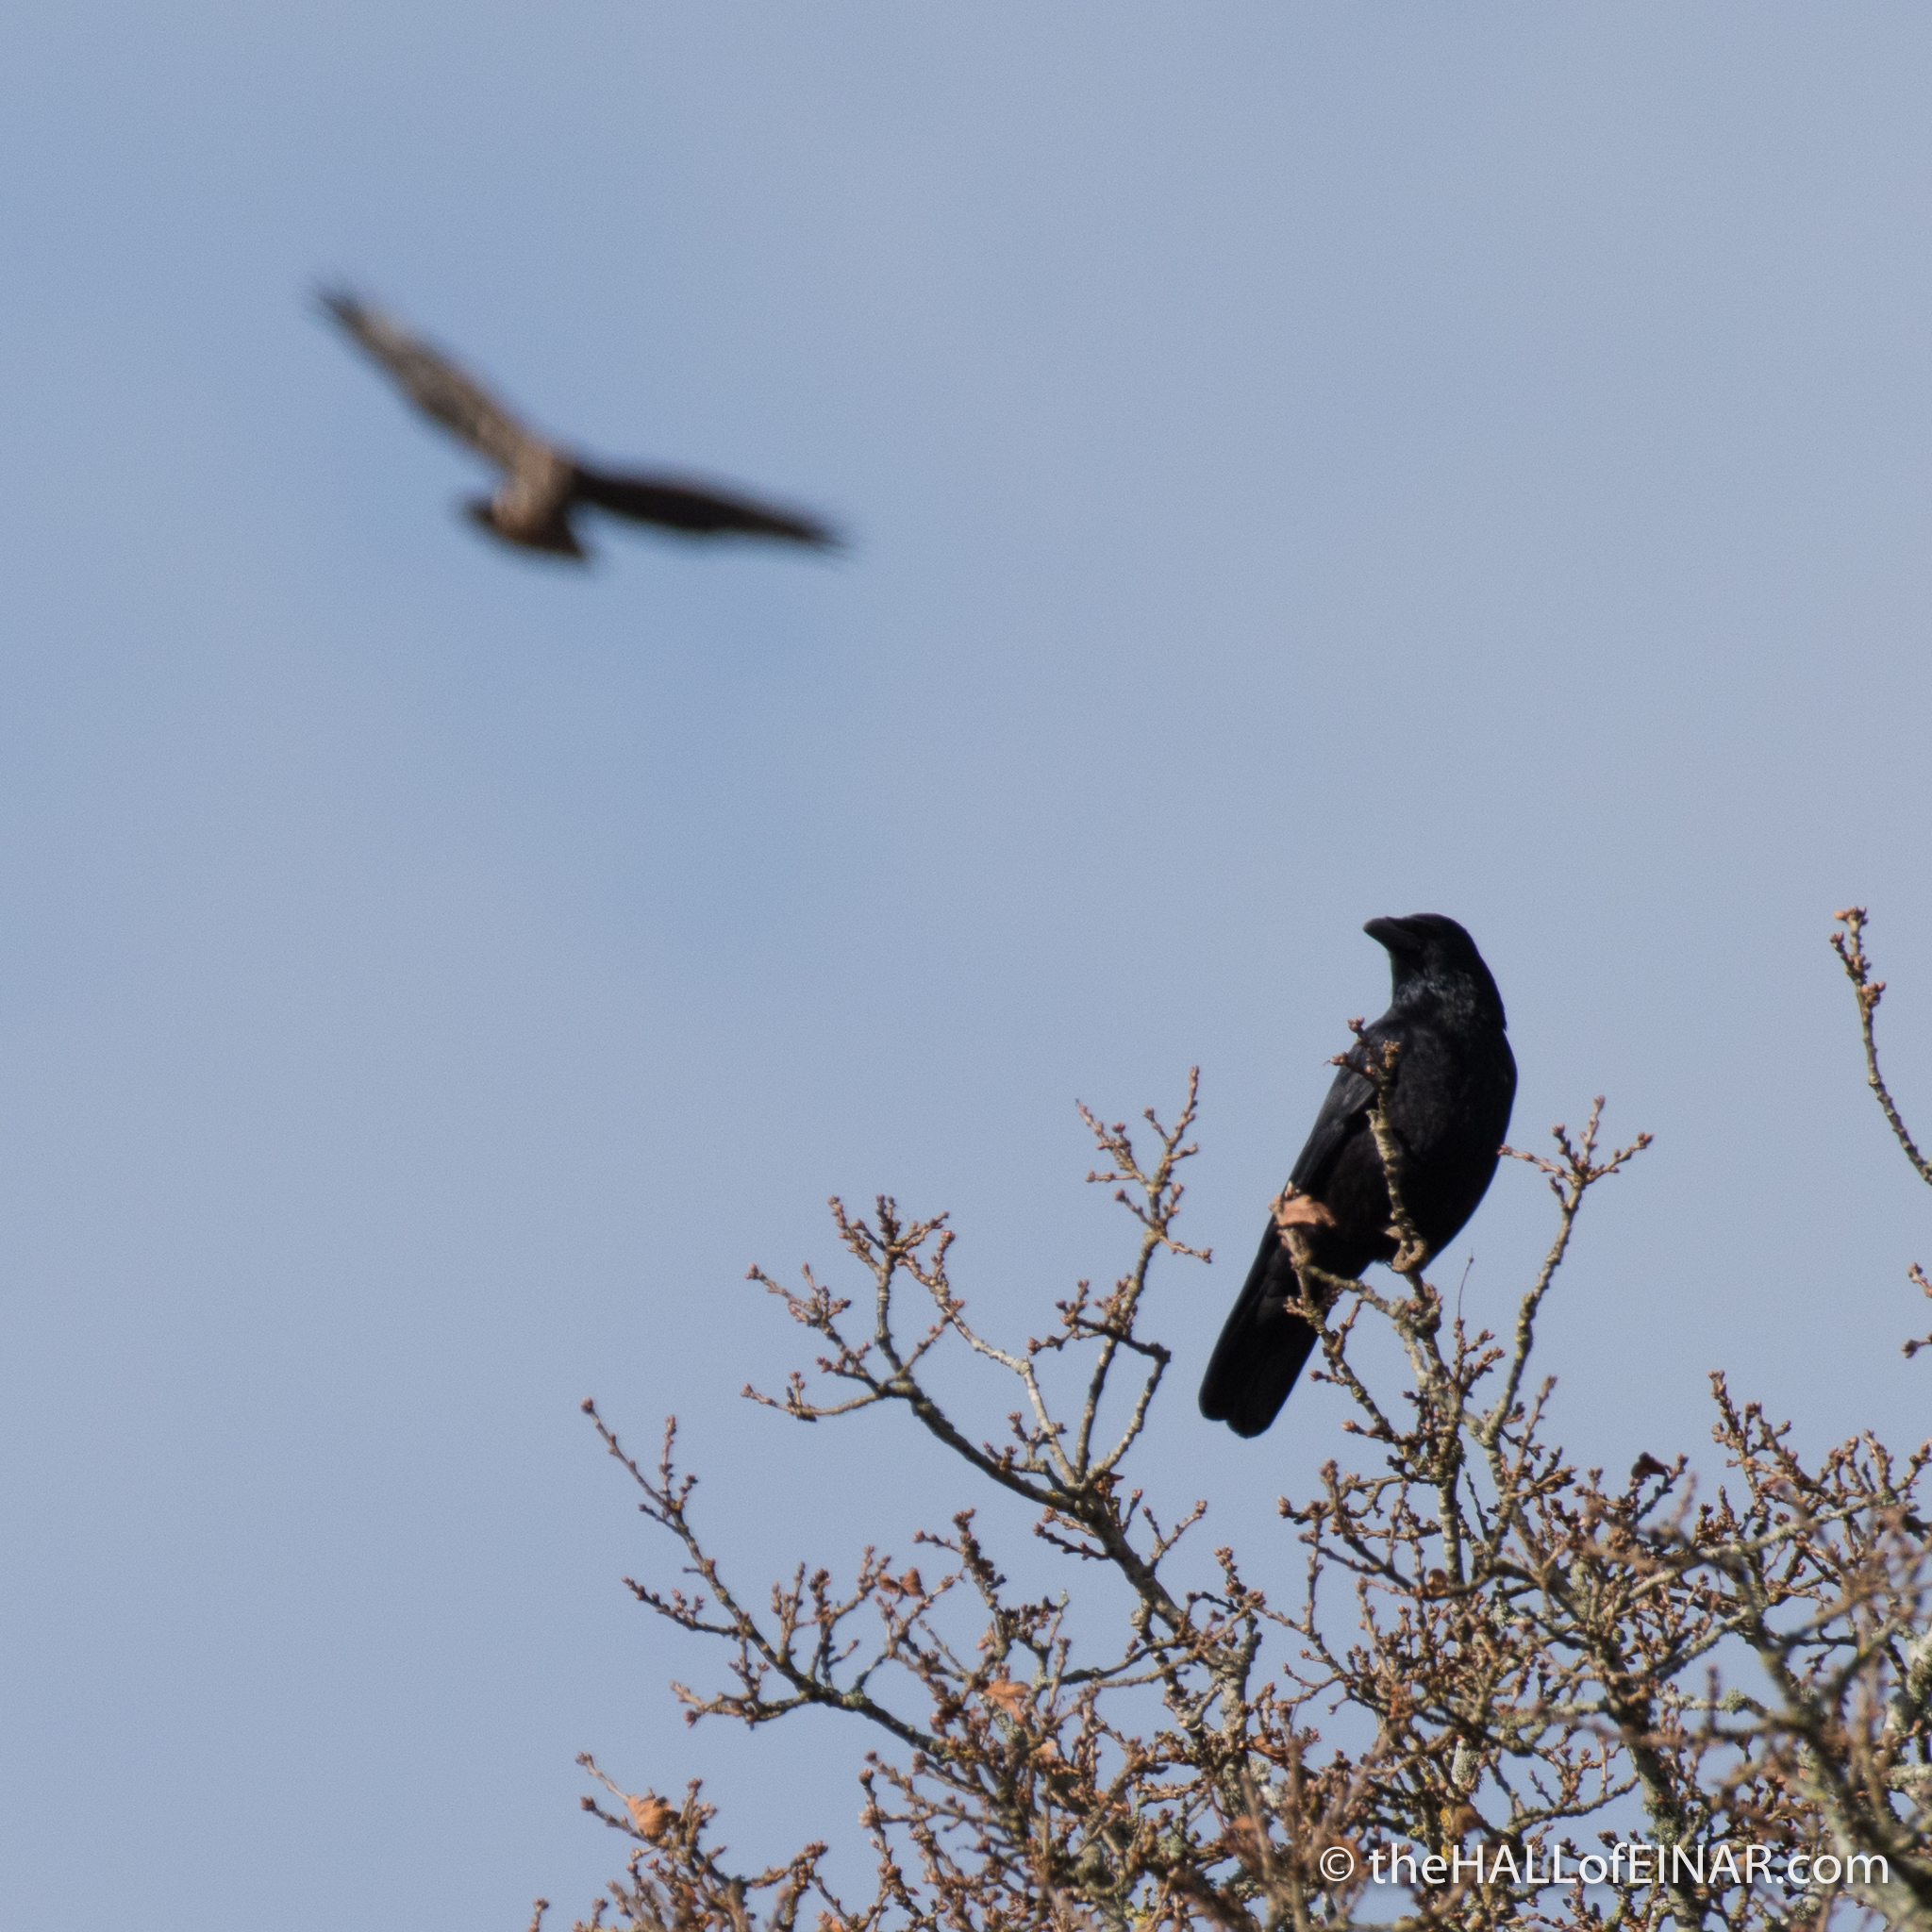 Crow and Buzzard - The Hall of Einar - photograph (c) David Bailey (not the)